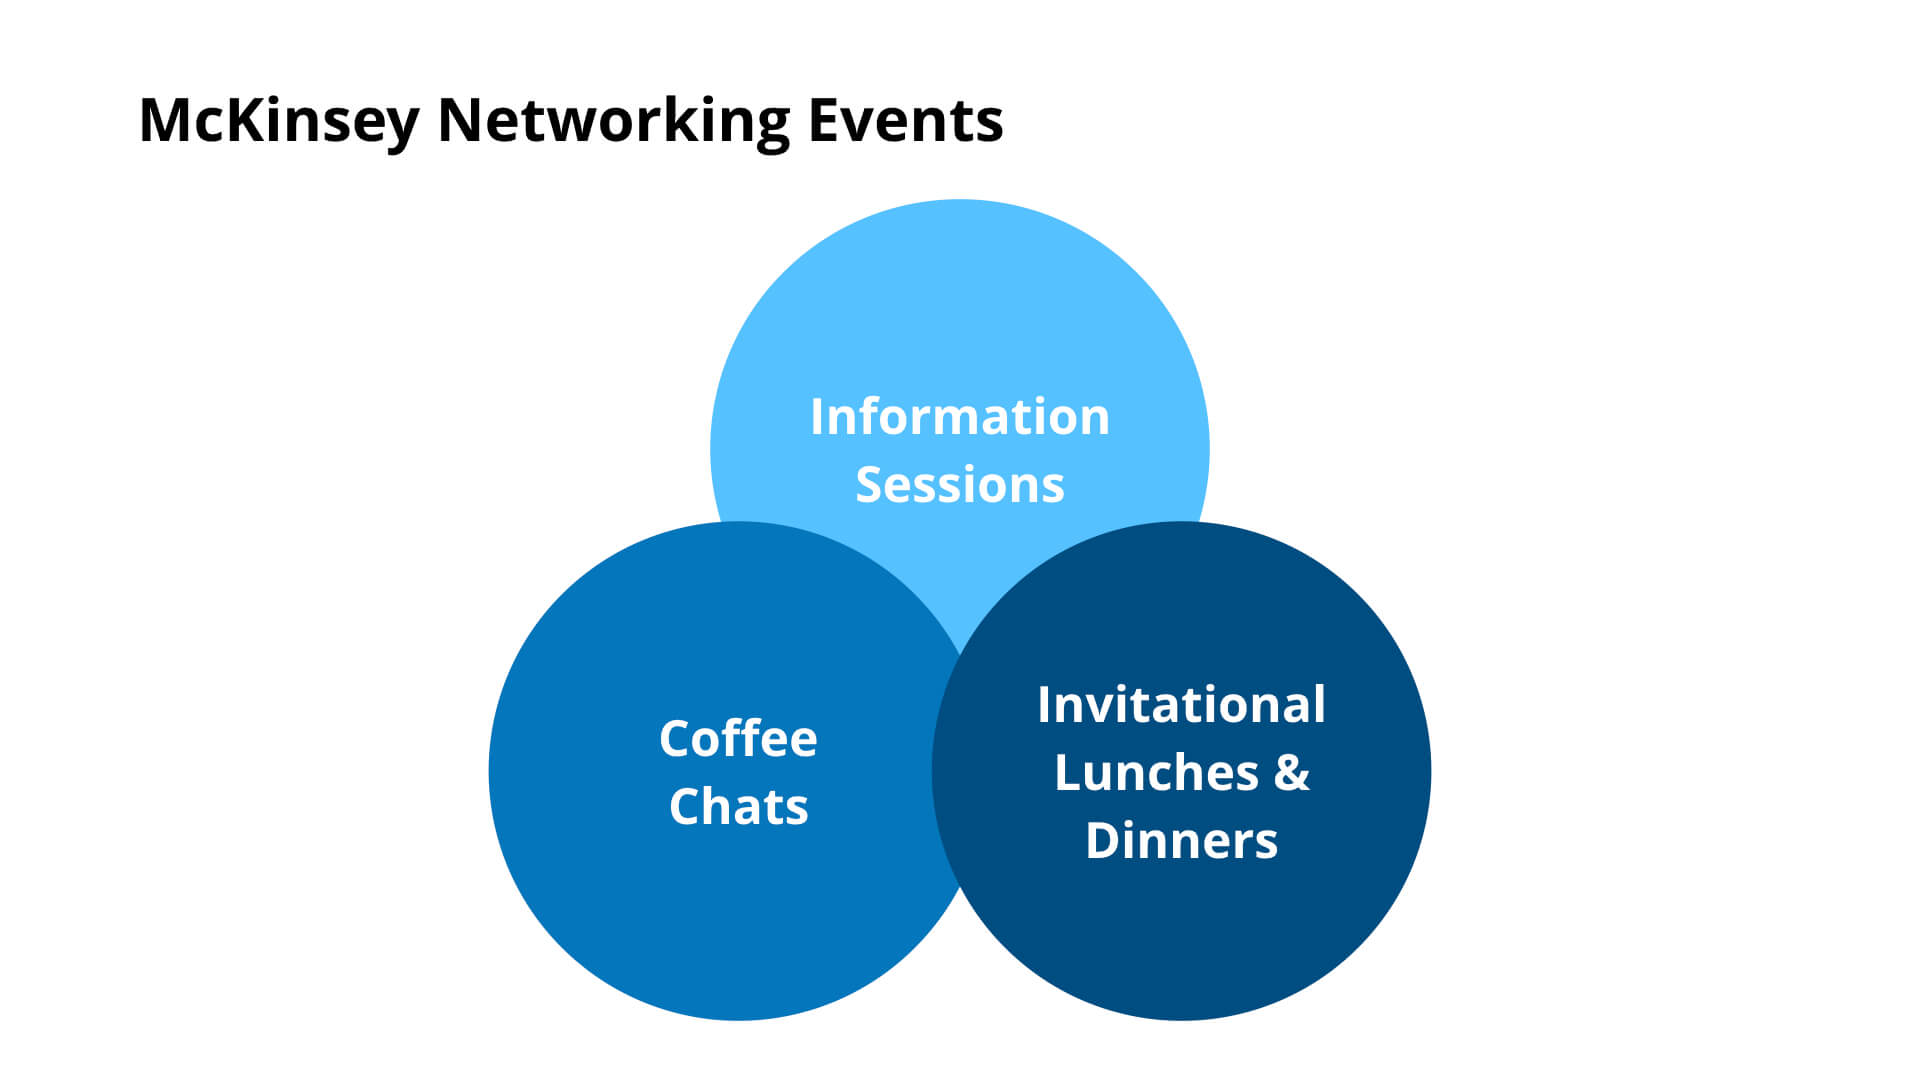 McKinsey Networking Events